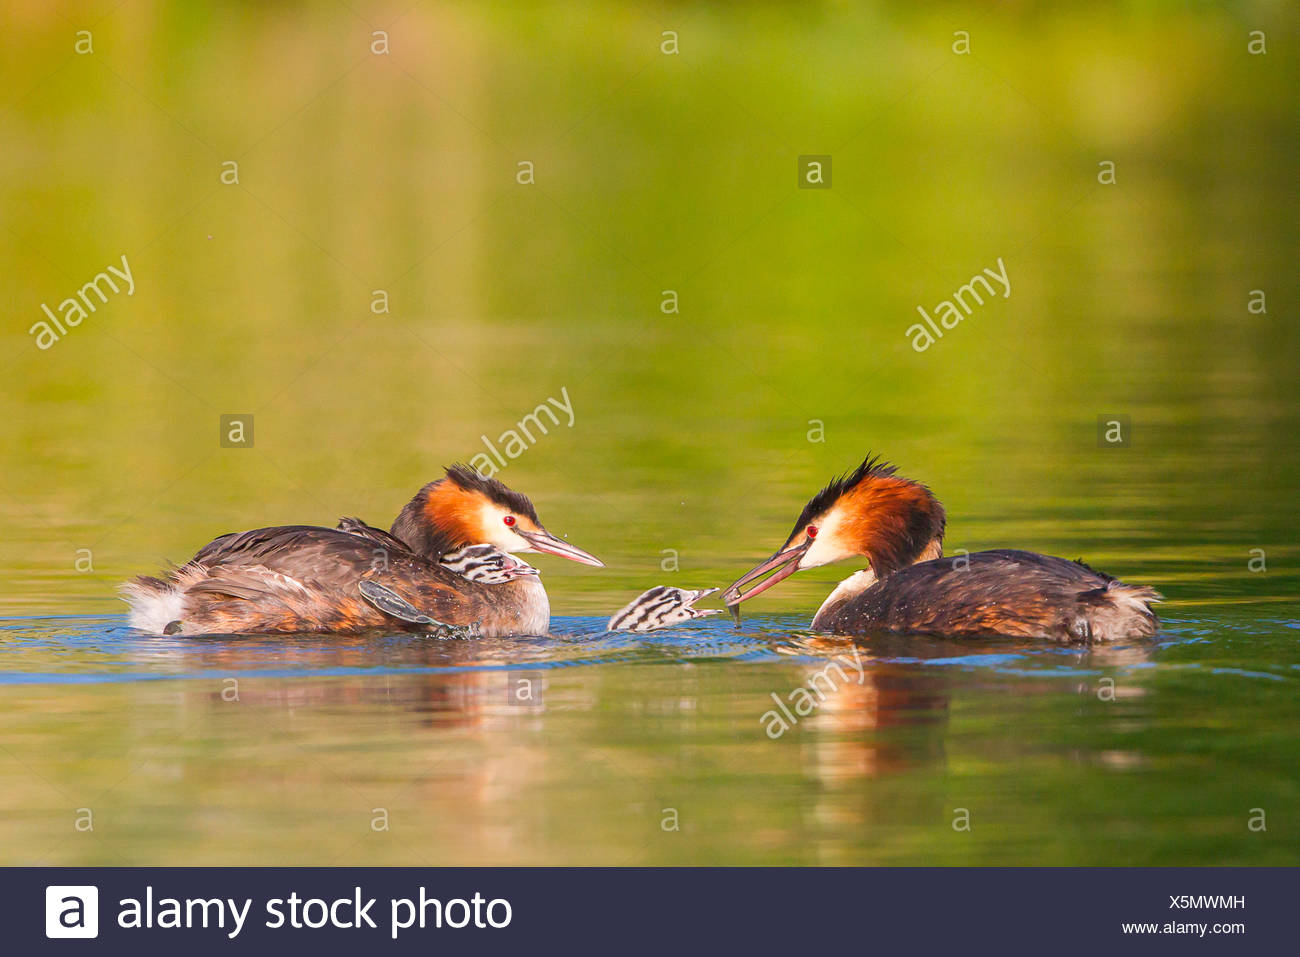 Great Crested Grebes (Podiceps cristatus), feeding a chick on the water, North Hesse, Hesse, Germany - Stock Image